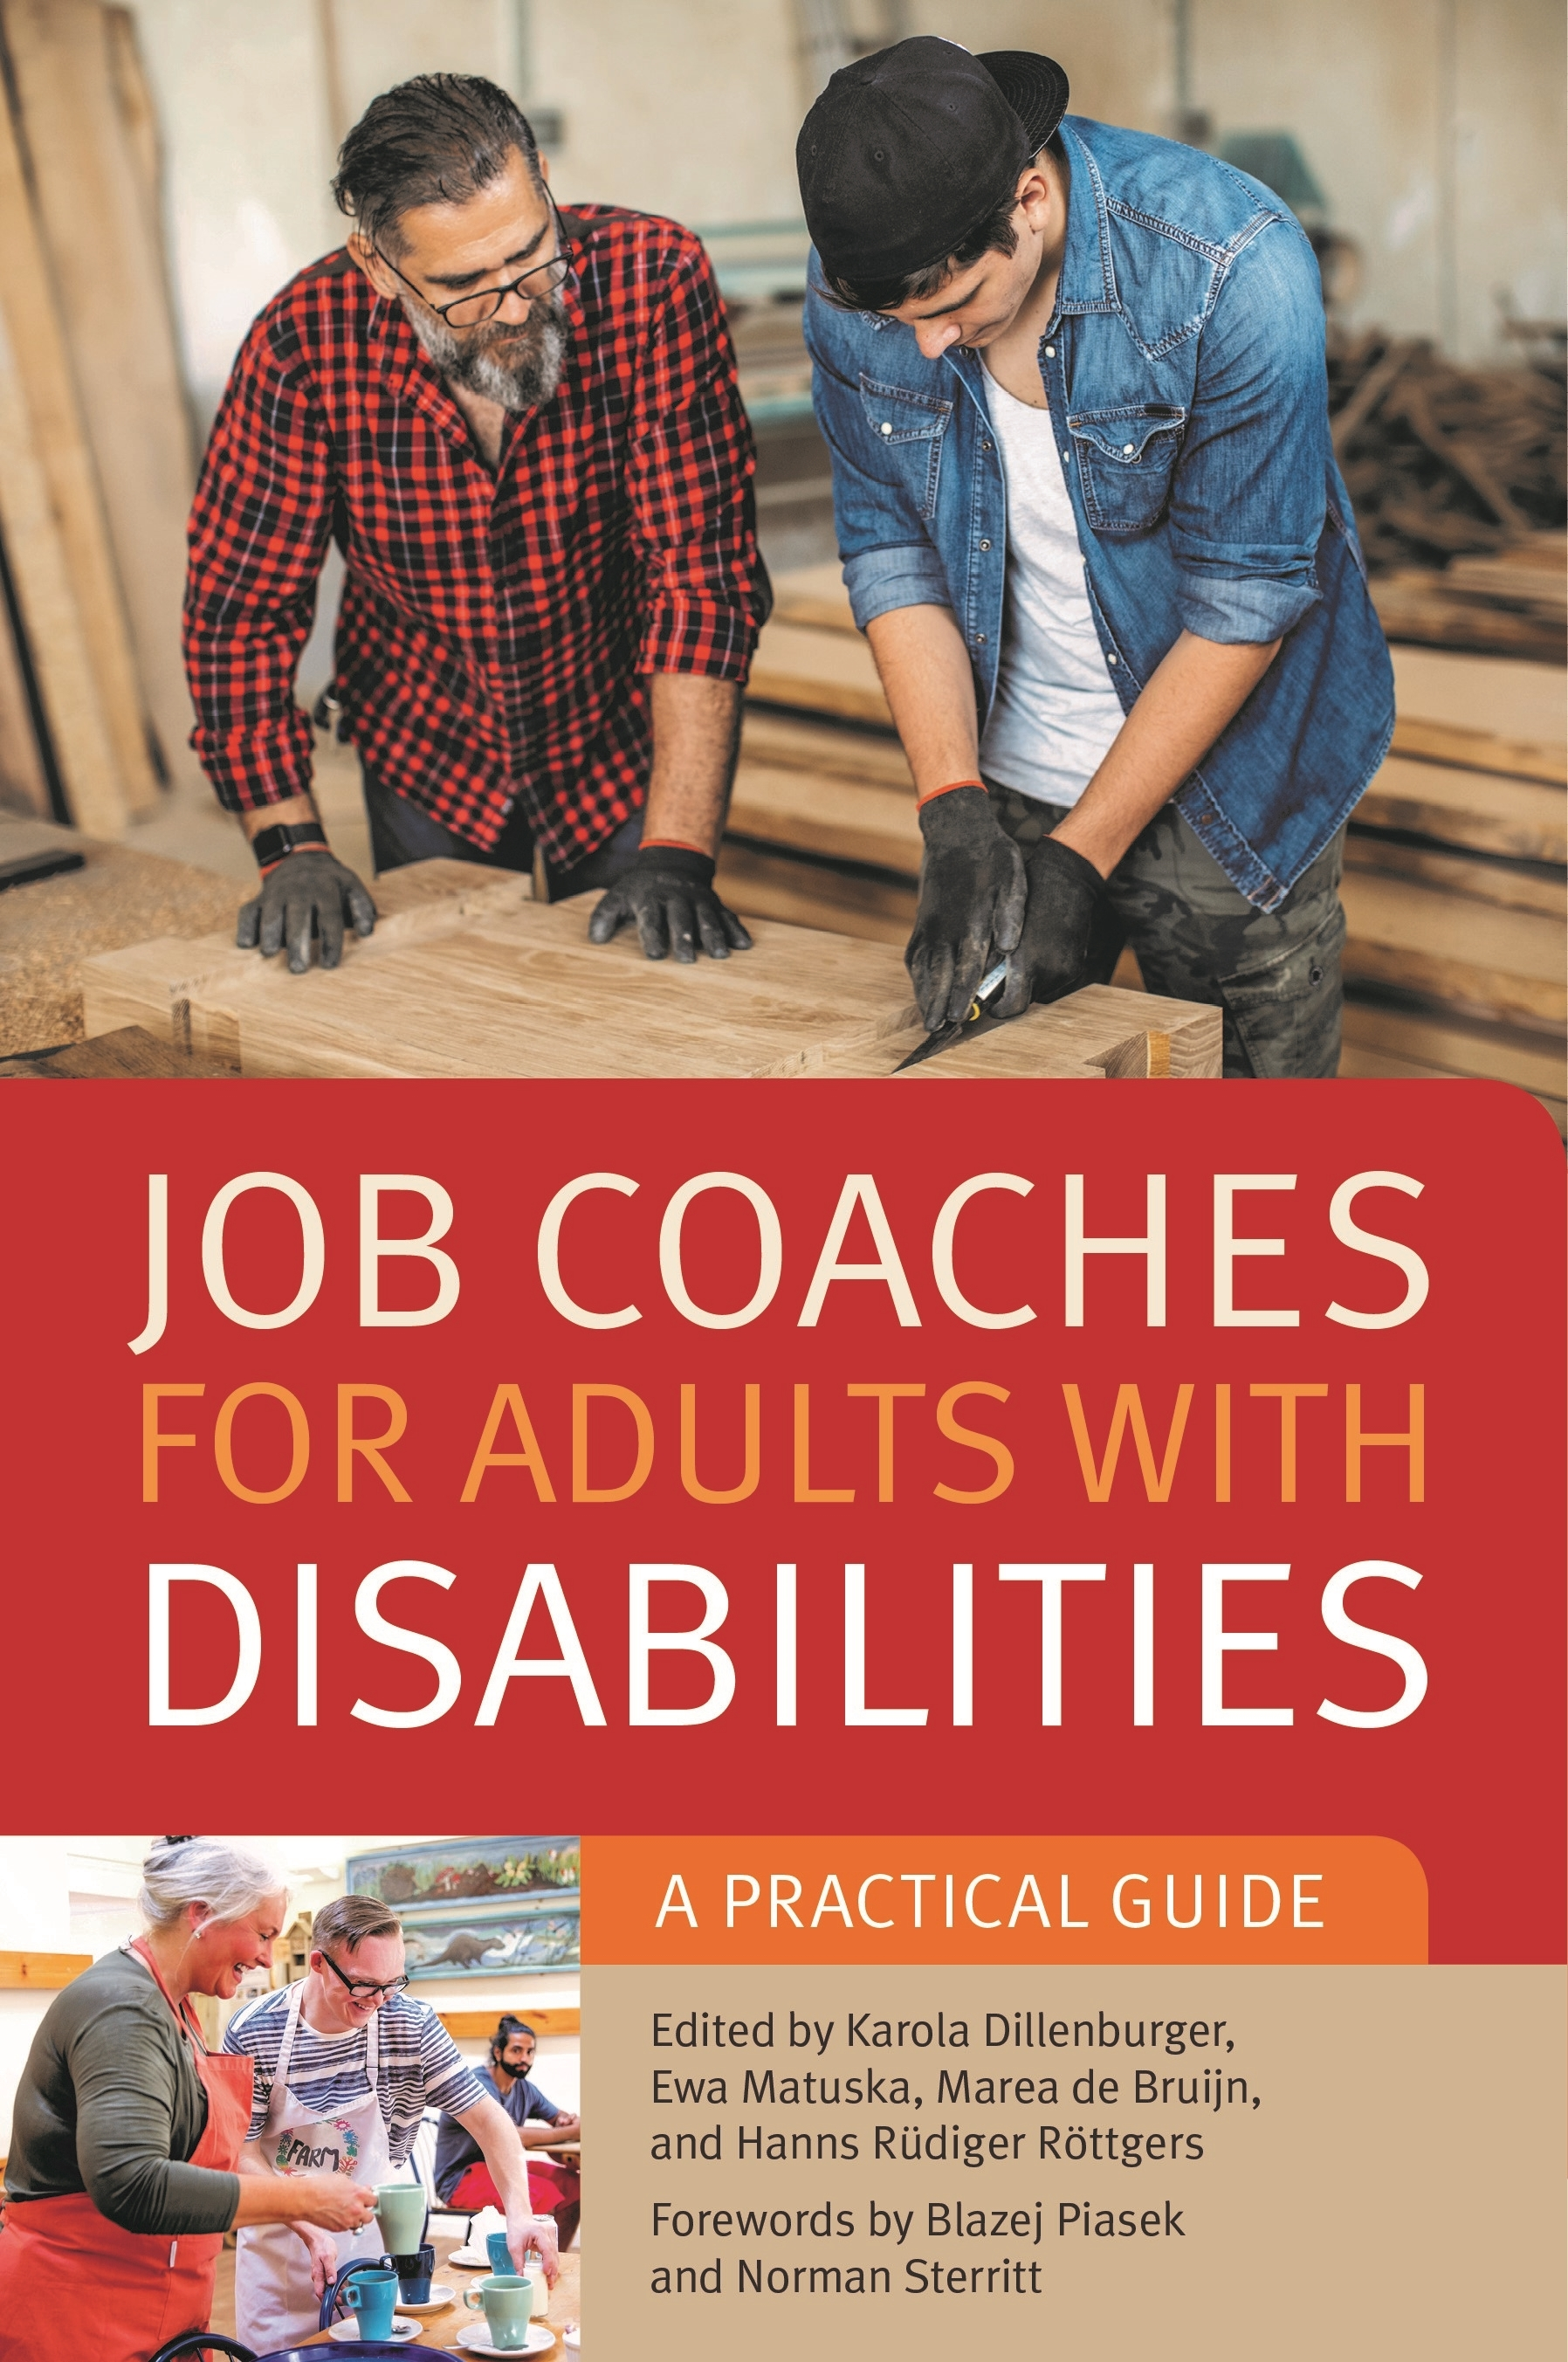 Download Ebook Job Coaches for Adults with Disabilities by Karola Dillenburger Pdf